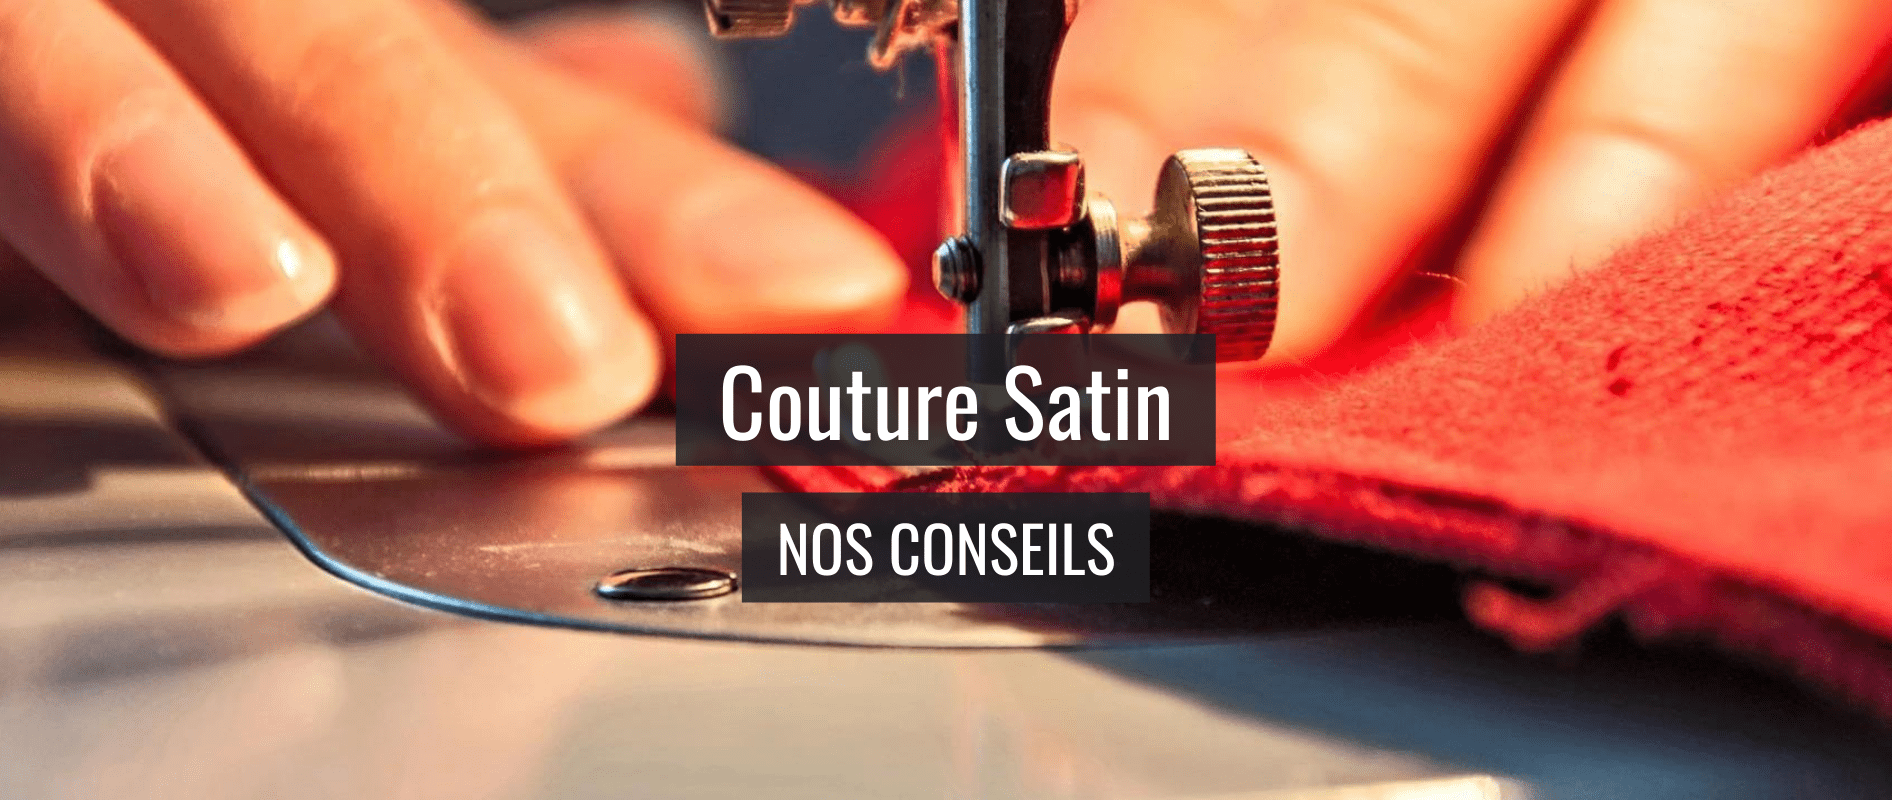 couture satin